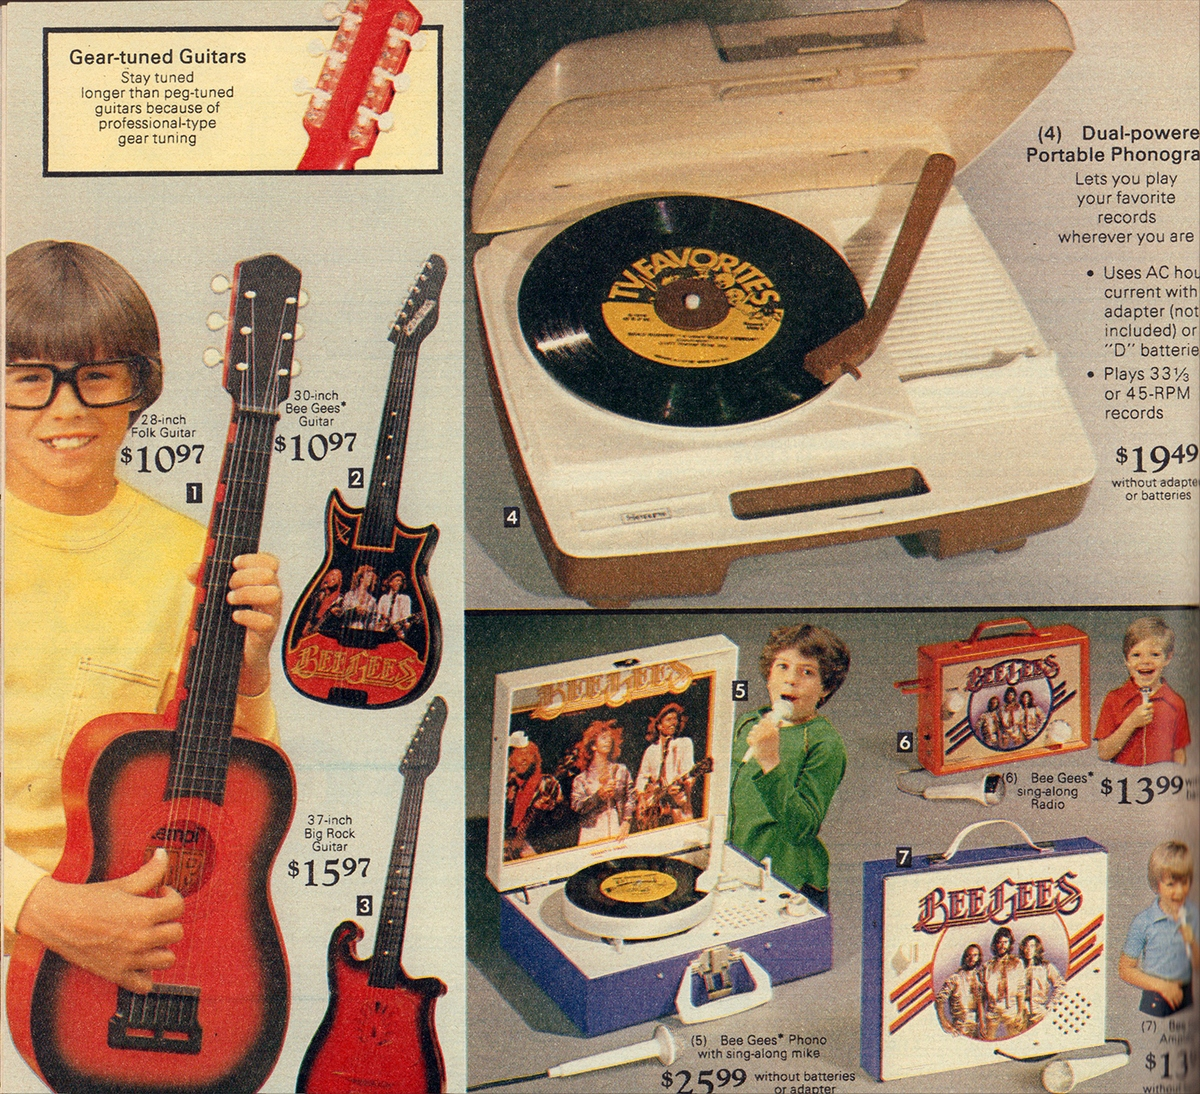 guitar-sears-catalog-1979.jpg